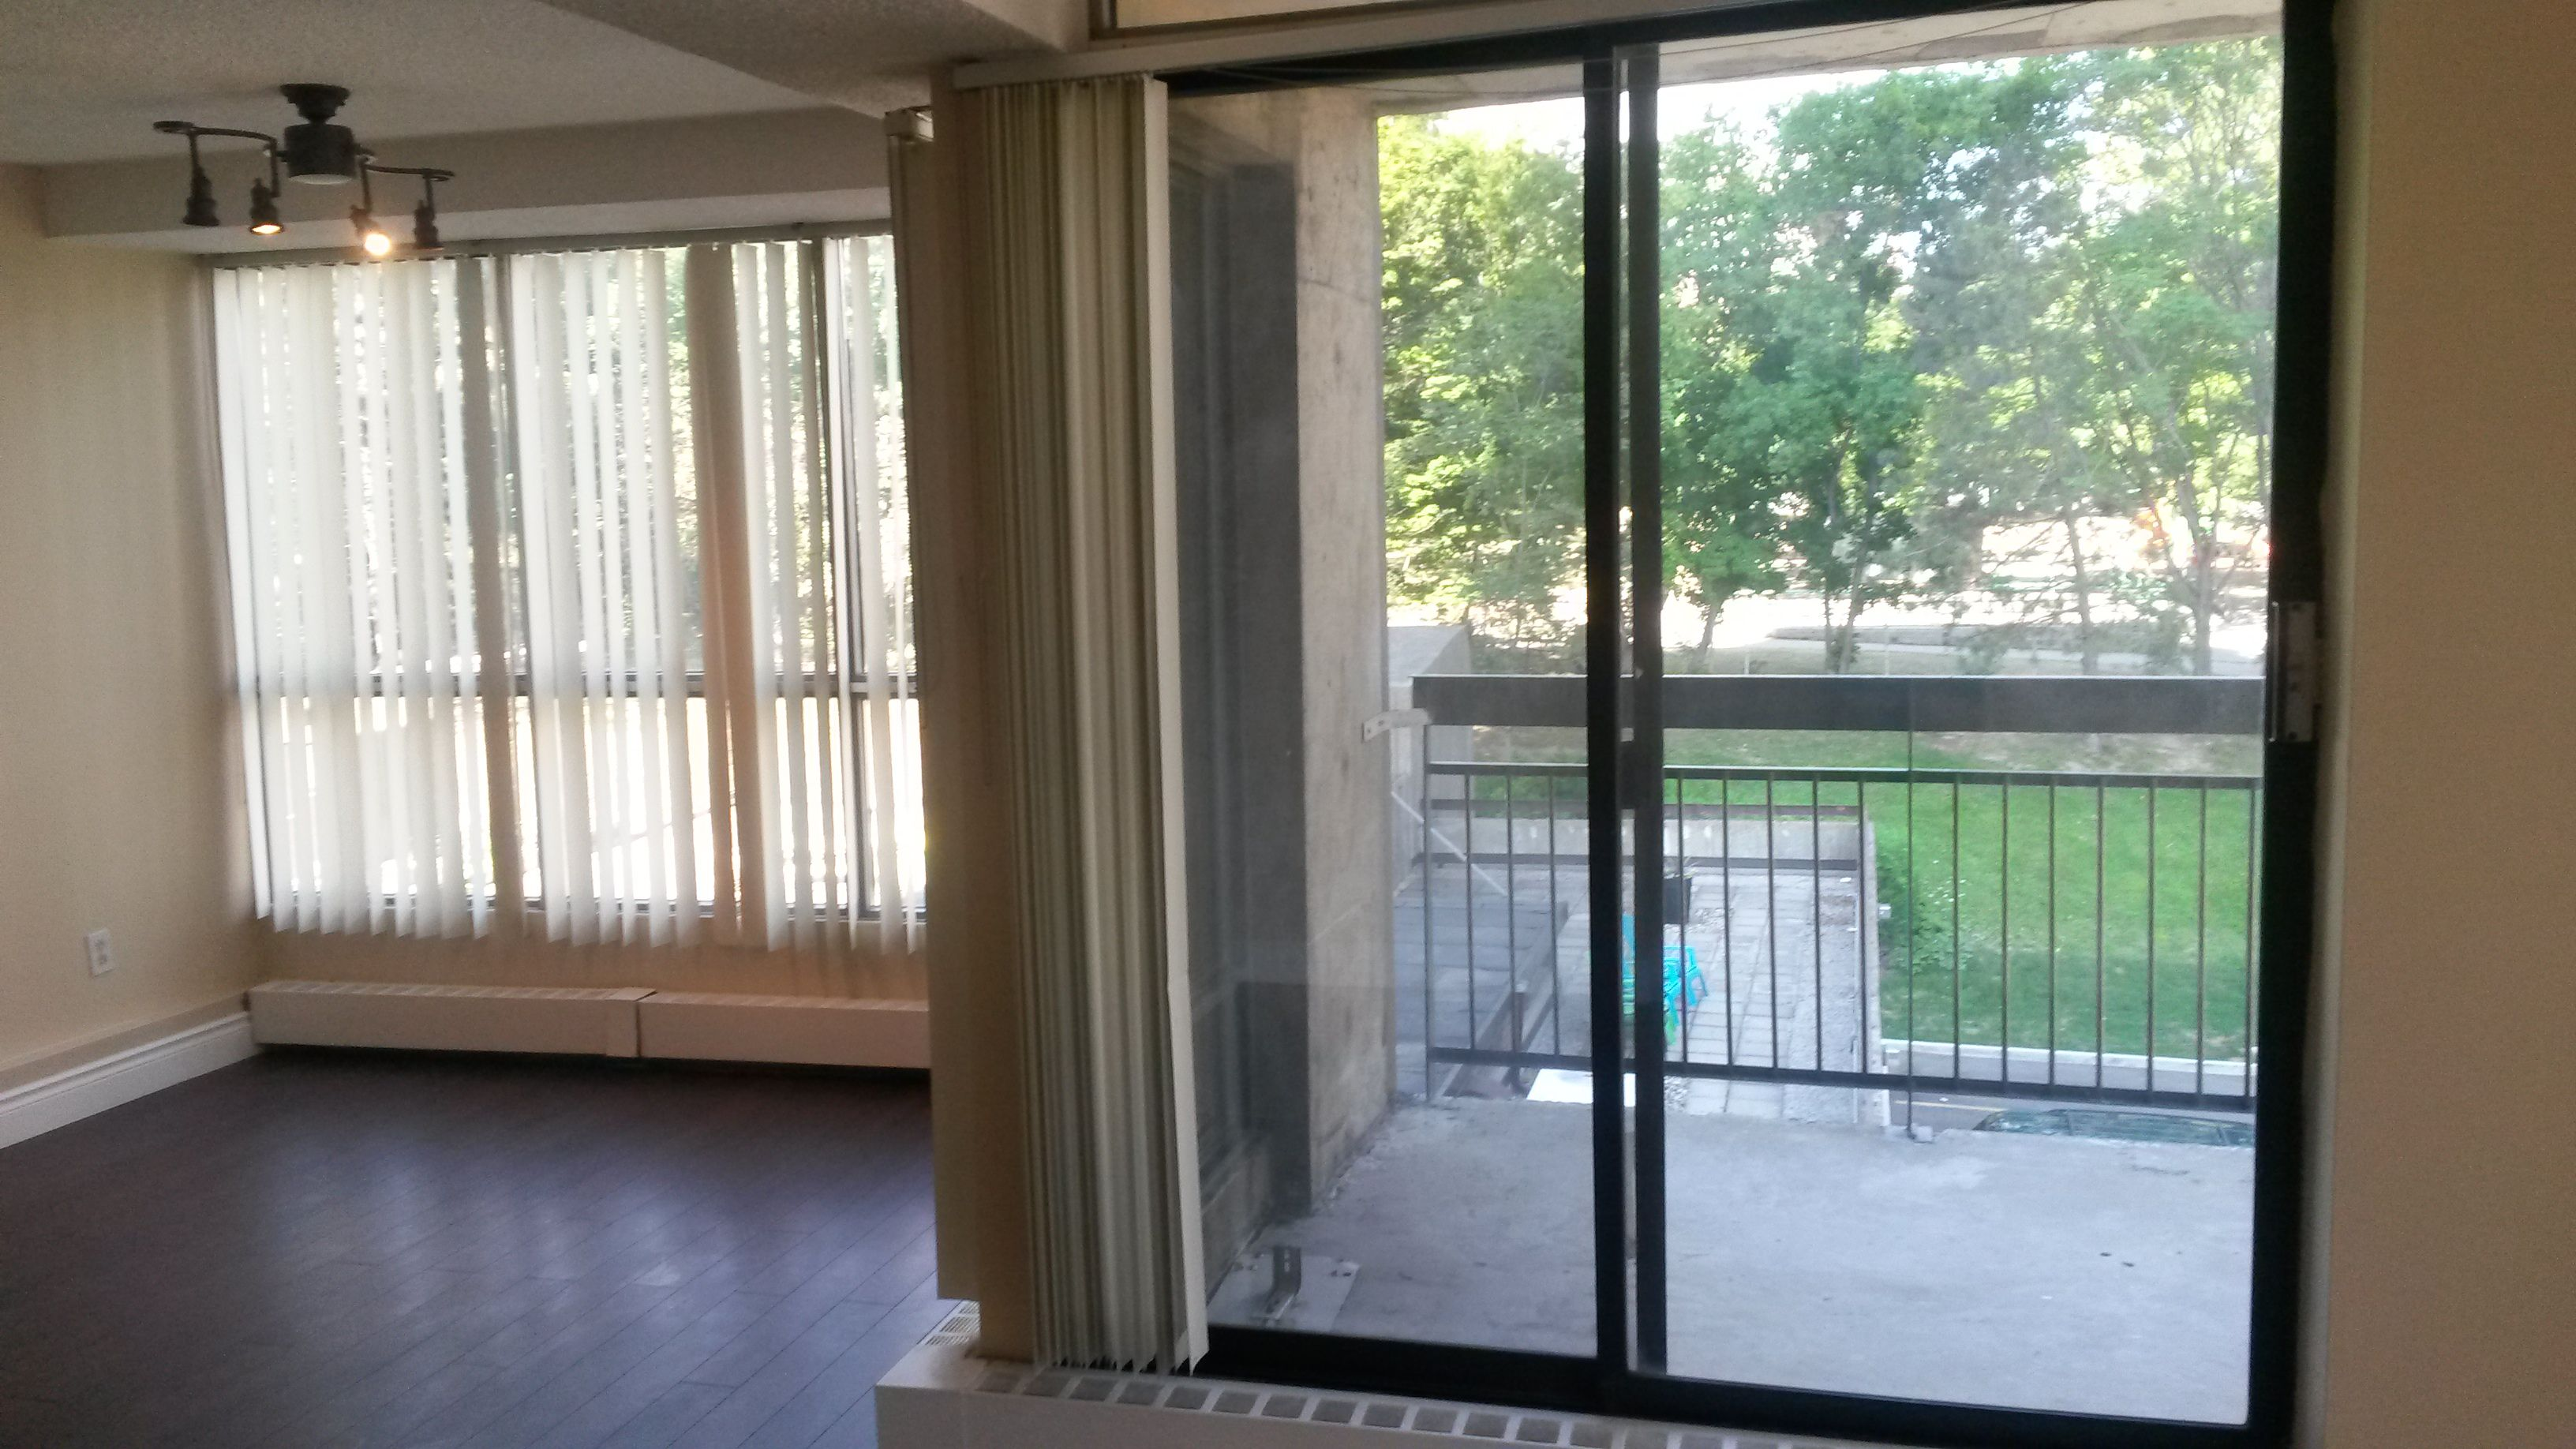 2 Bedroom Apartment Downtown Hamilton For This 1000 Sqf Renovated